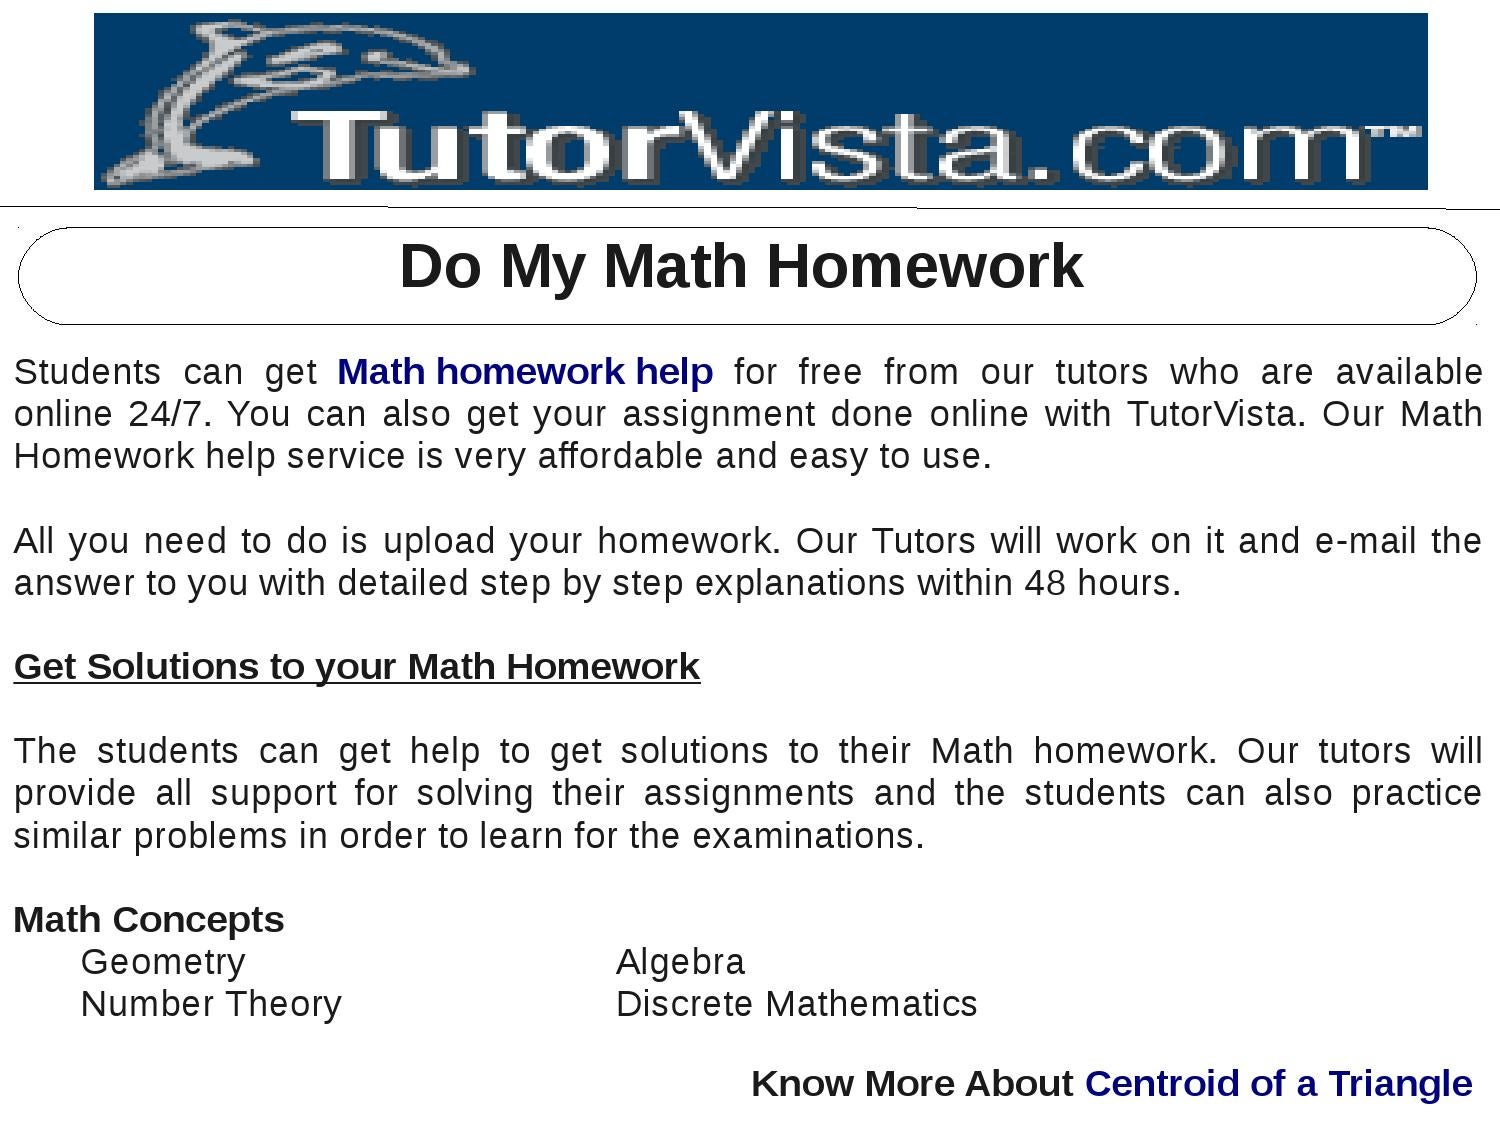 I need help with my math homework online